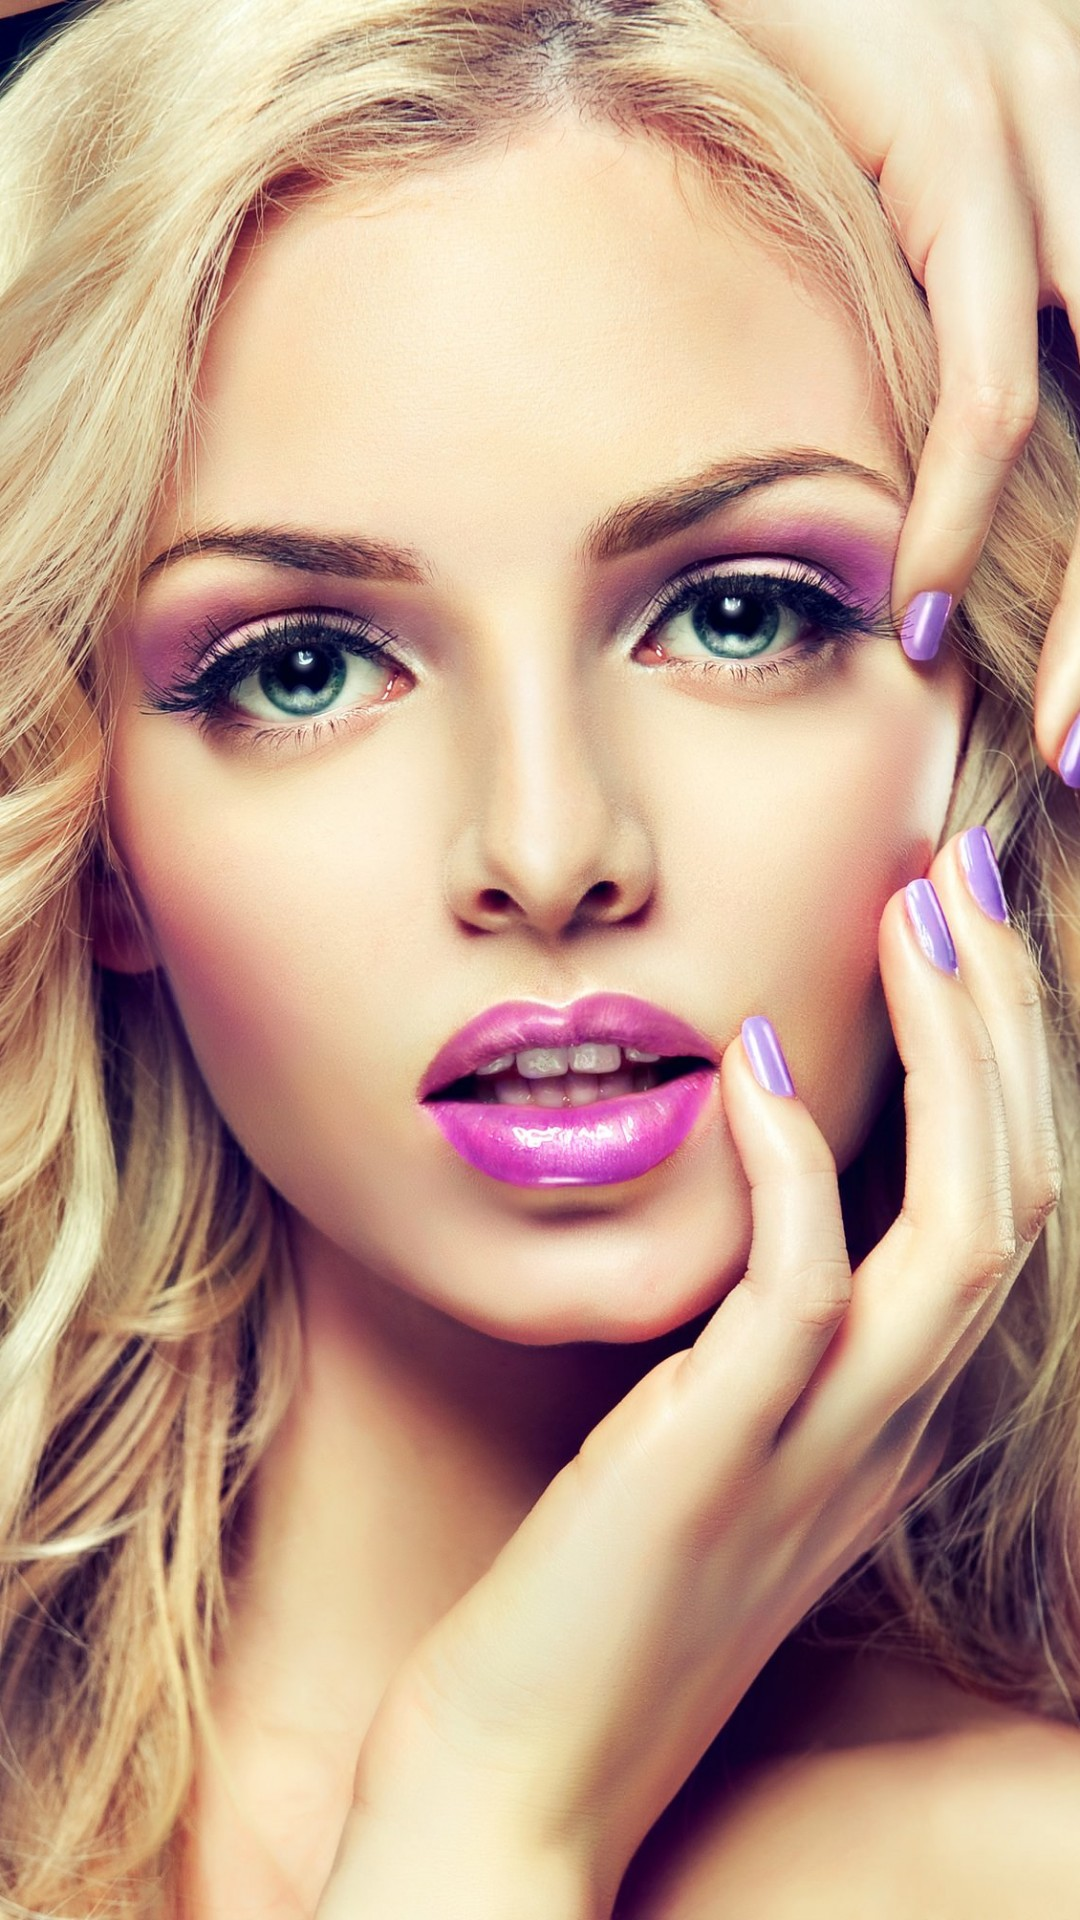 Beautiful Blonde Girl With Lilac Makeup Wallpaper for SAMSUNG Galaxy S4